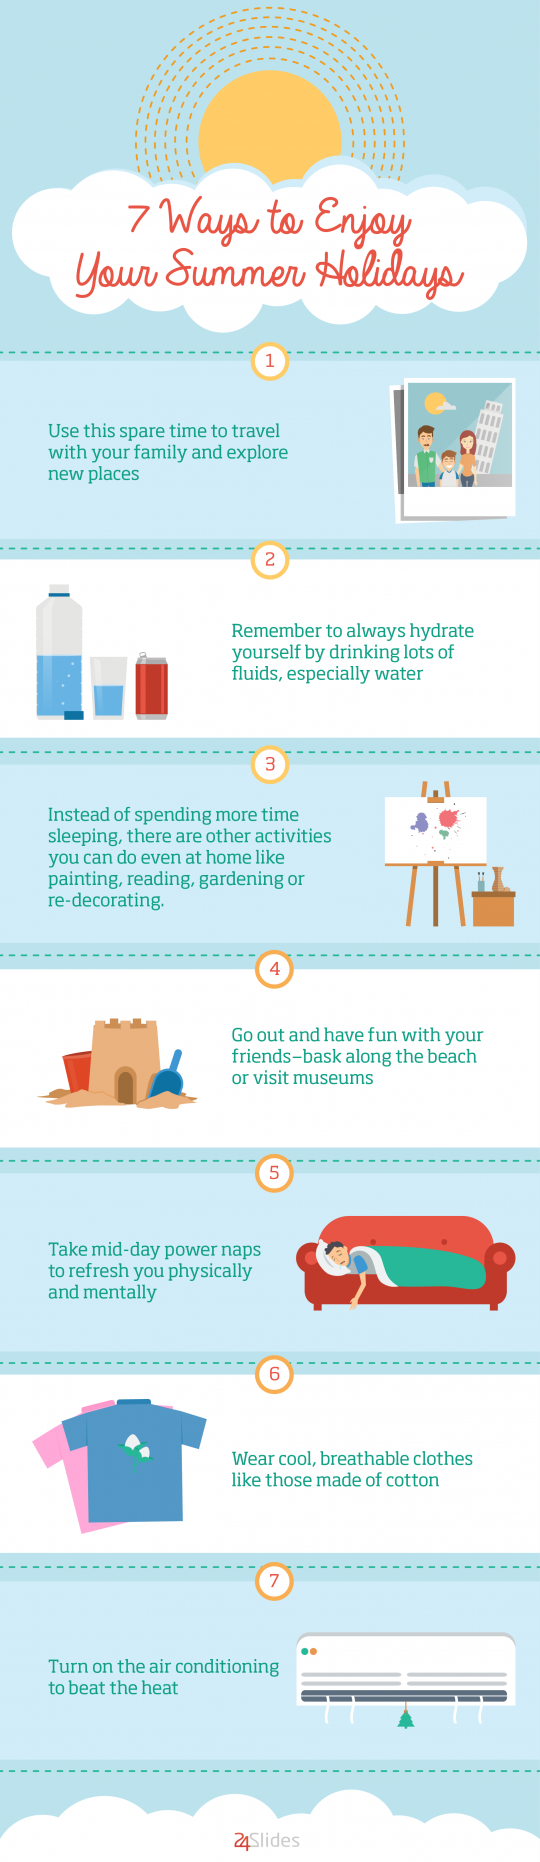 7 Ways to Enjoy Your Summer Holidays